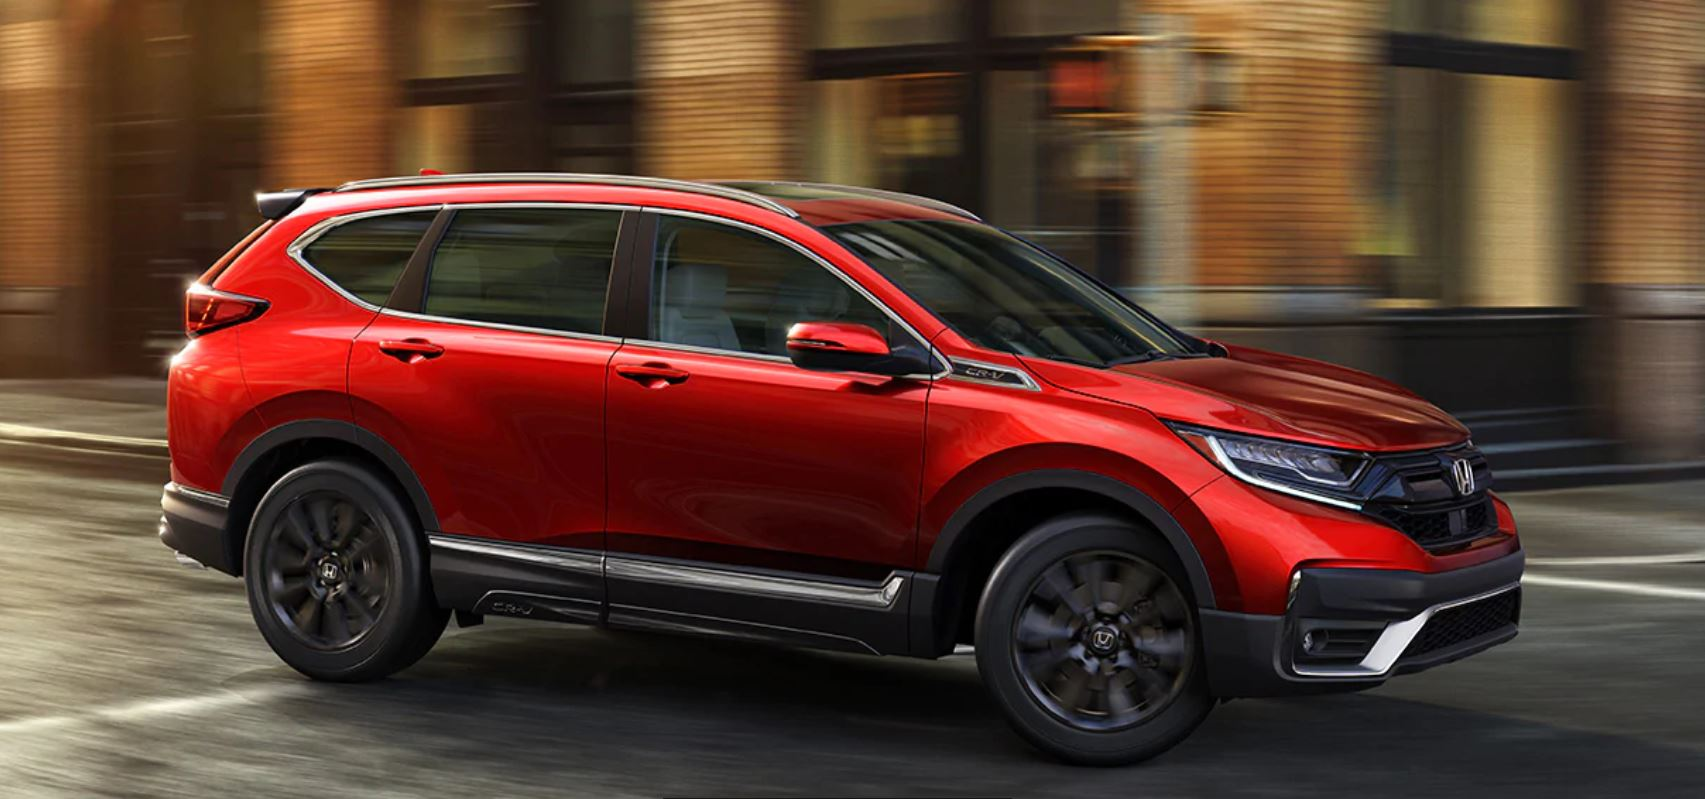 Buy, Lease, or Finance the 2019 Honda CR-V in Burlington IA